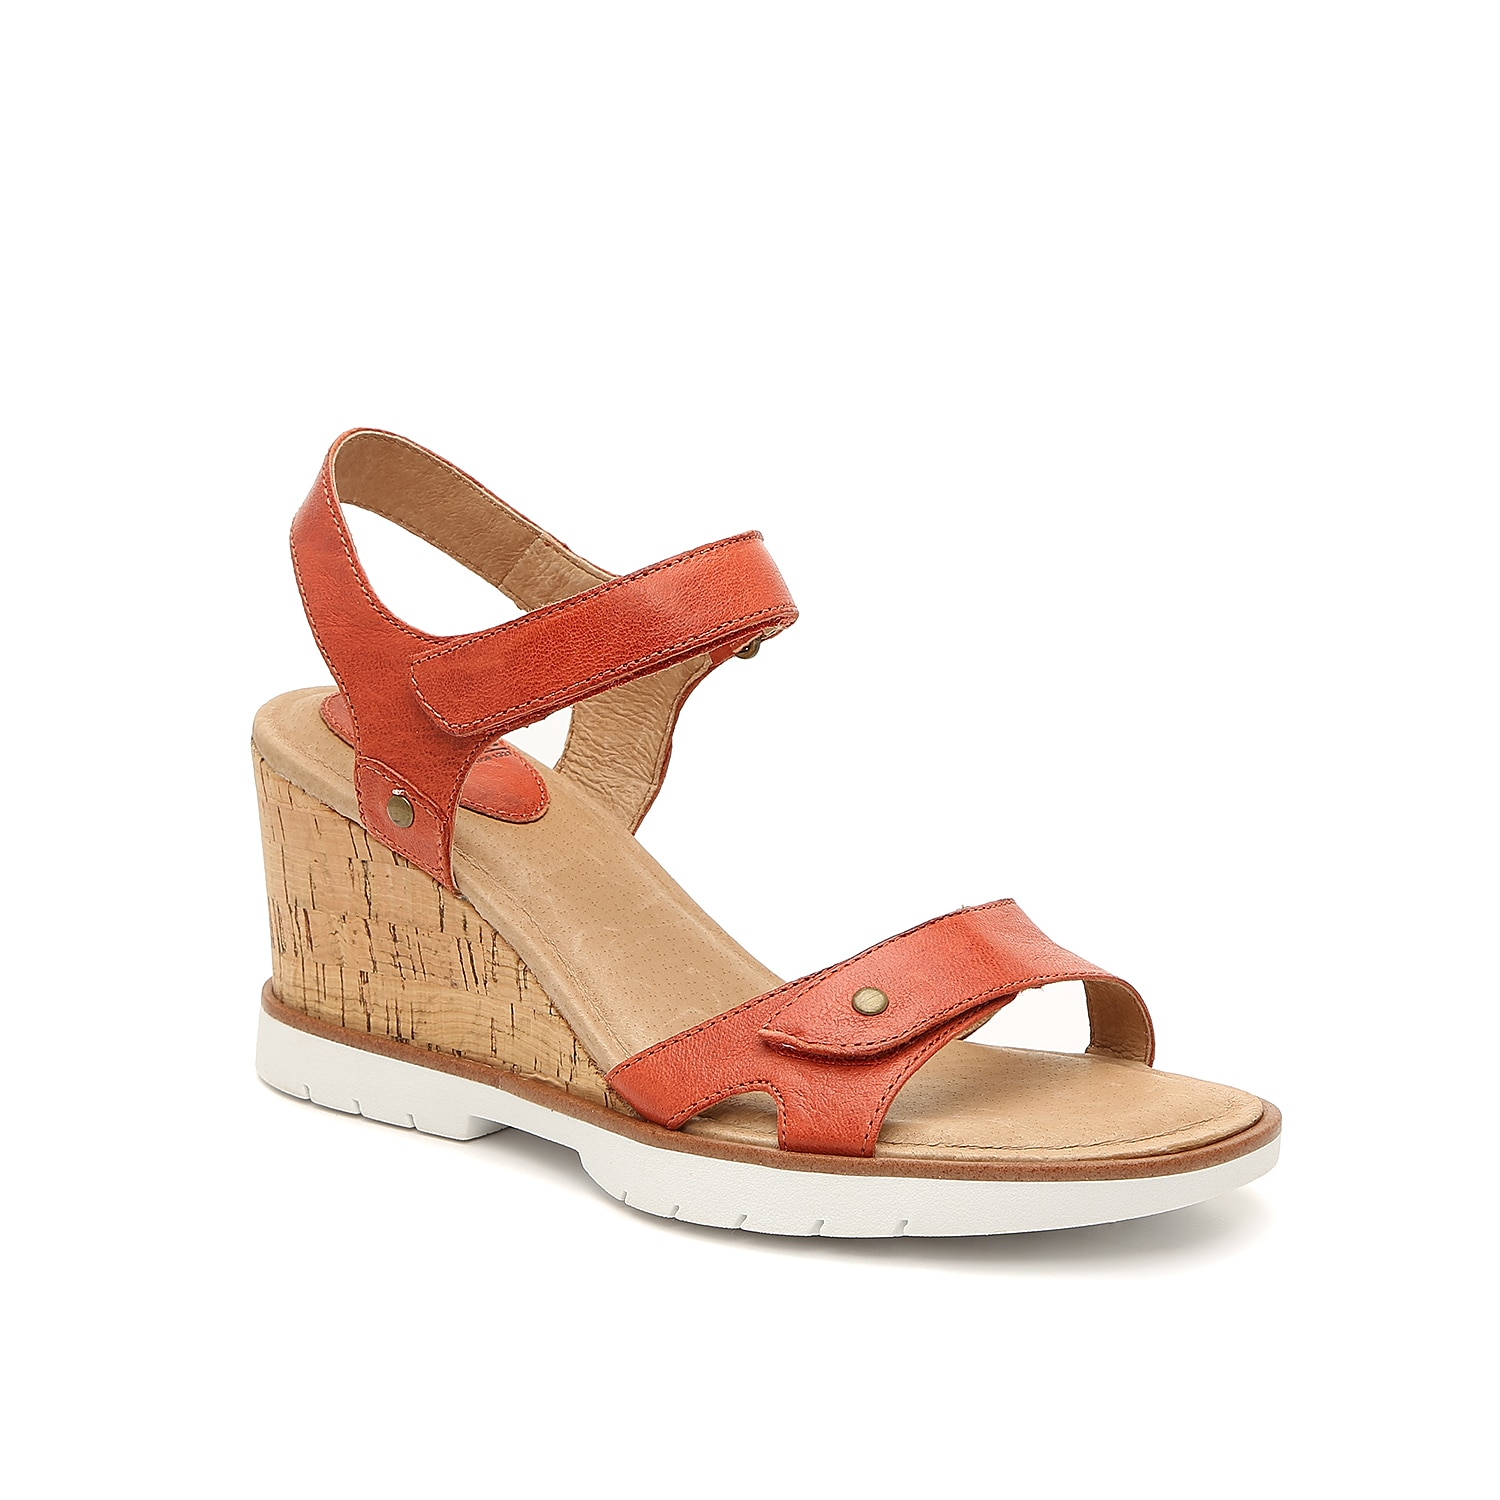 A two-piece design improves the athletic fit of the Cyndy sandals from Sofft. Paired with a sporty vulc sole in contrasting white, these wedges capture classic charm with a cork-covered heel.